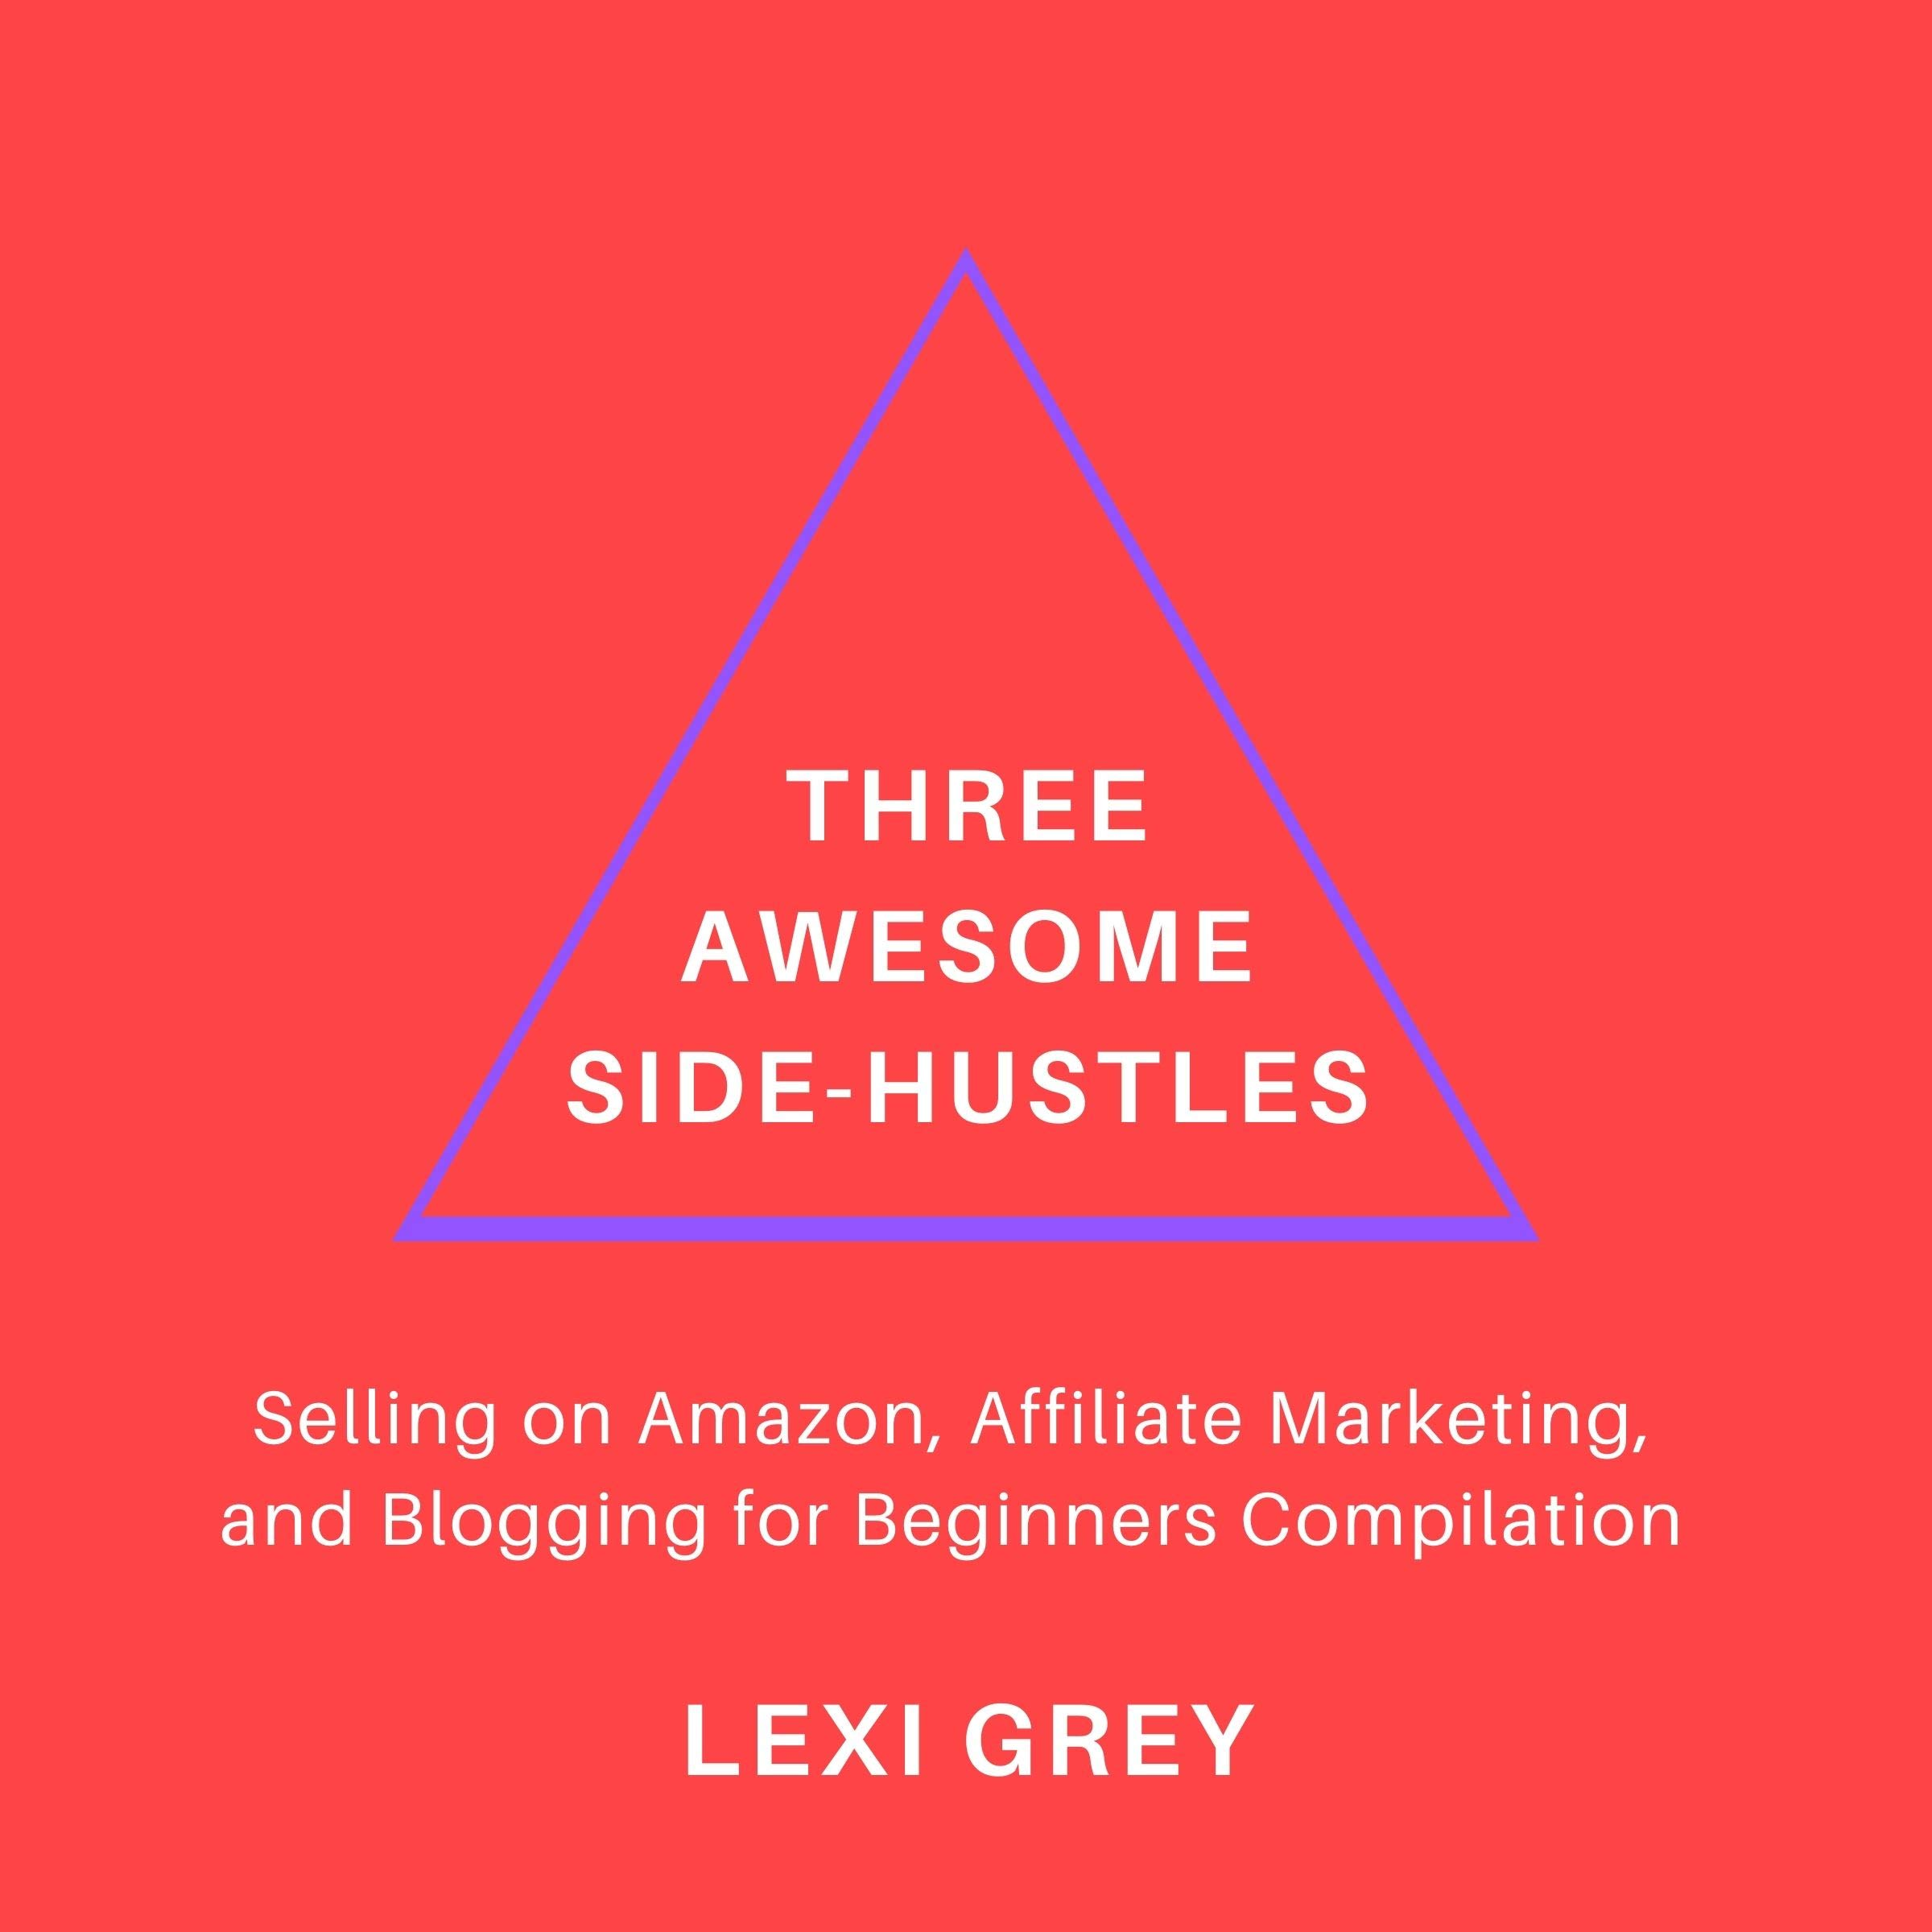 Three Awesome Side-Hustles: Selling on Amazon, Affiliate Marketing, and Blogging for Beginners Compilation